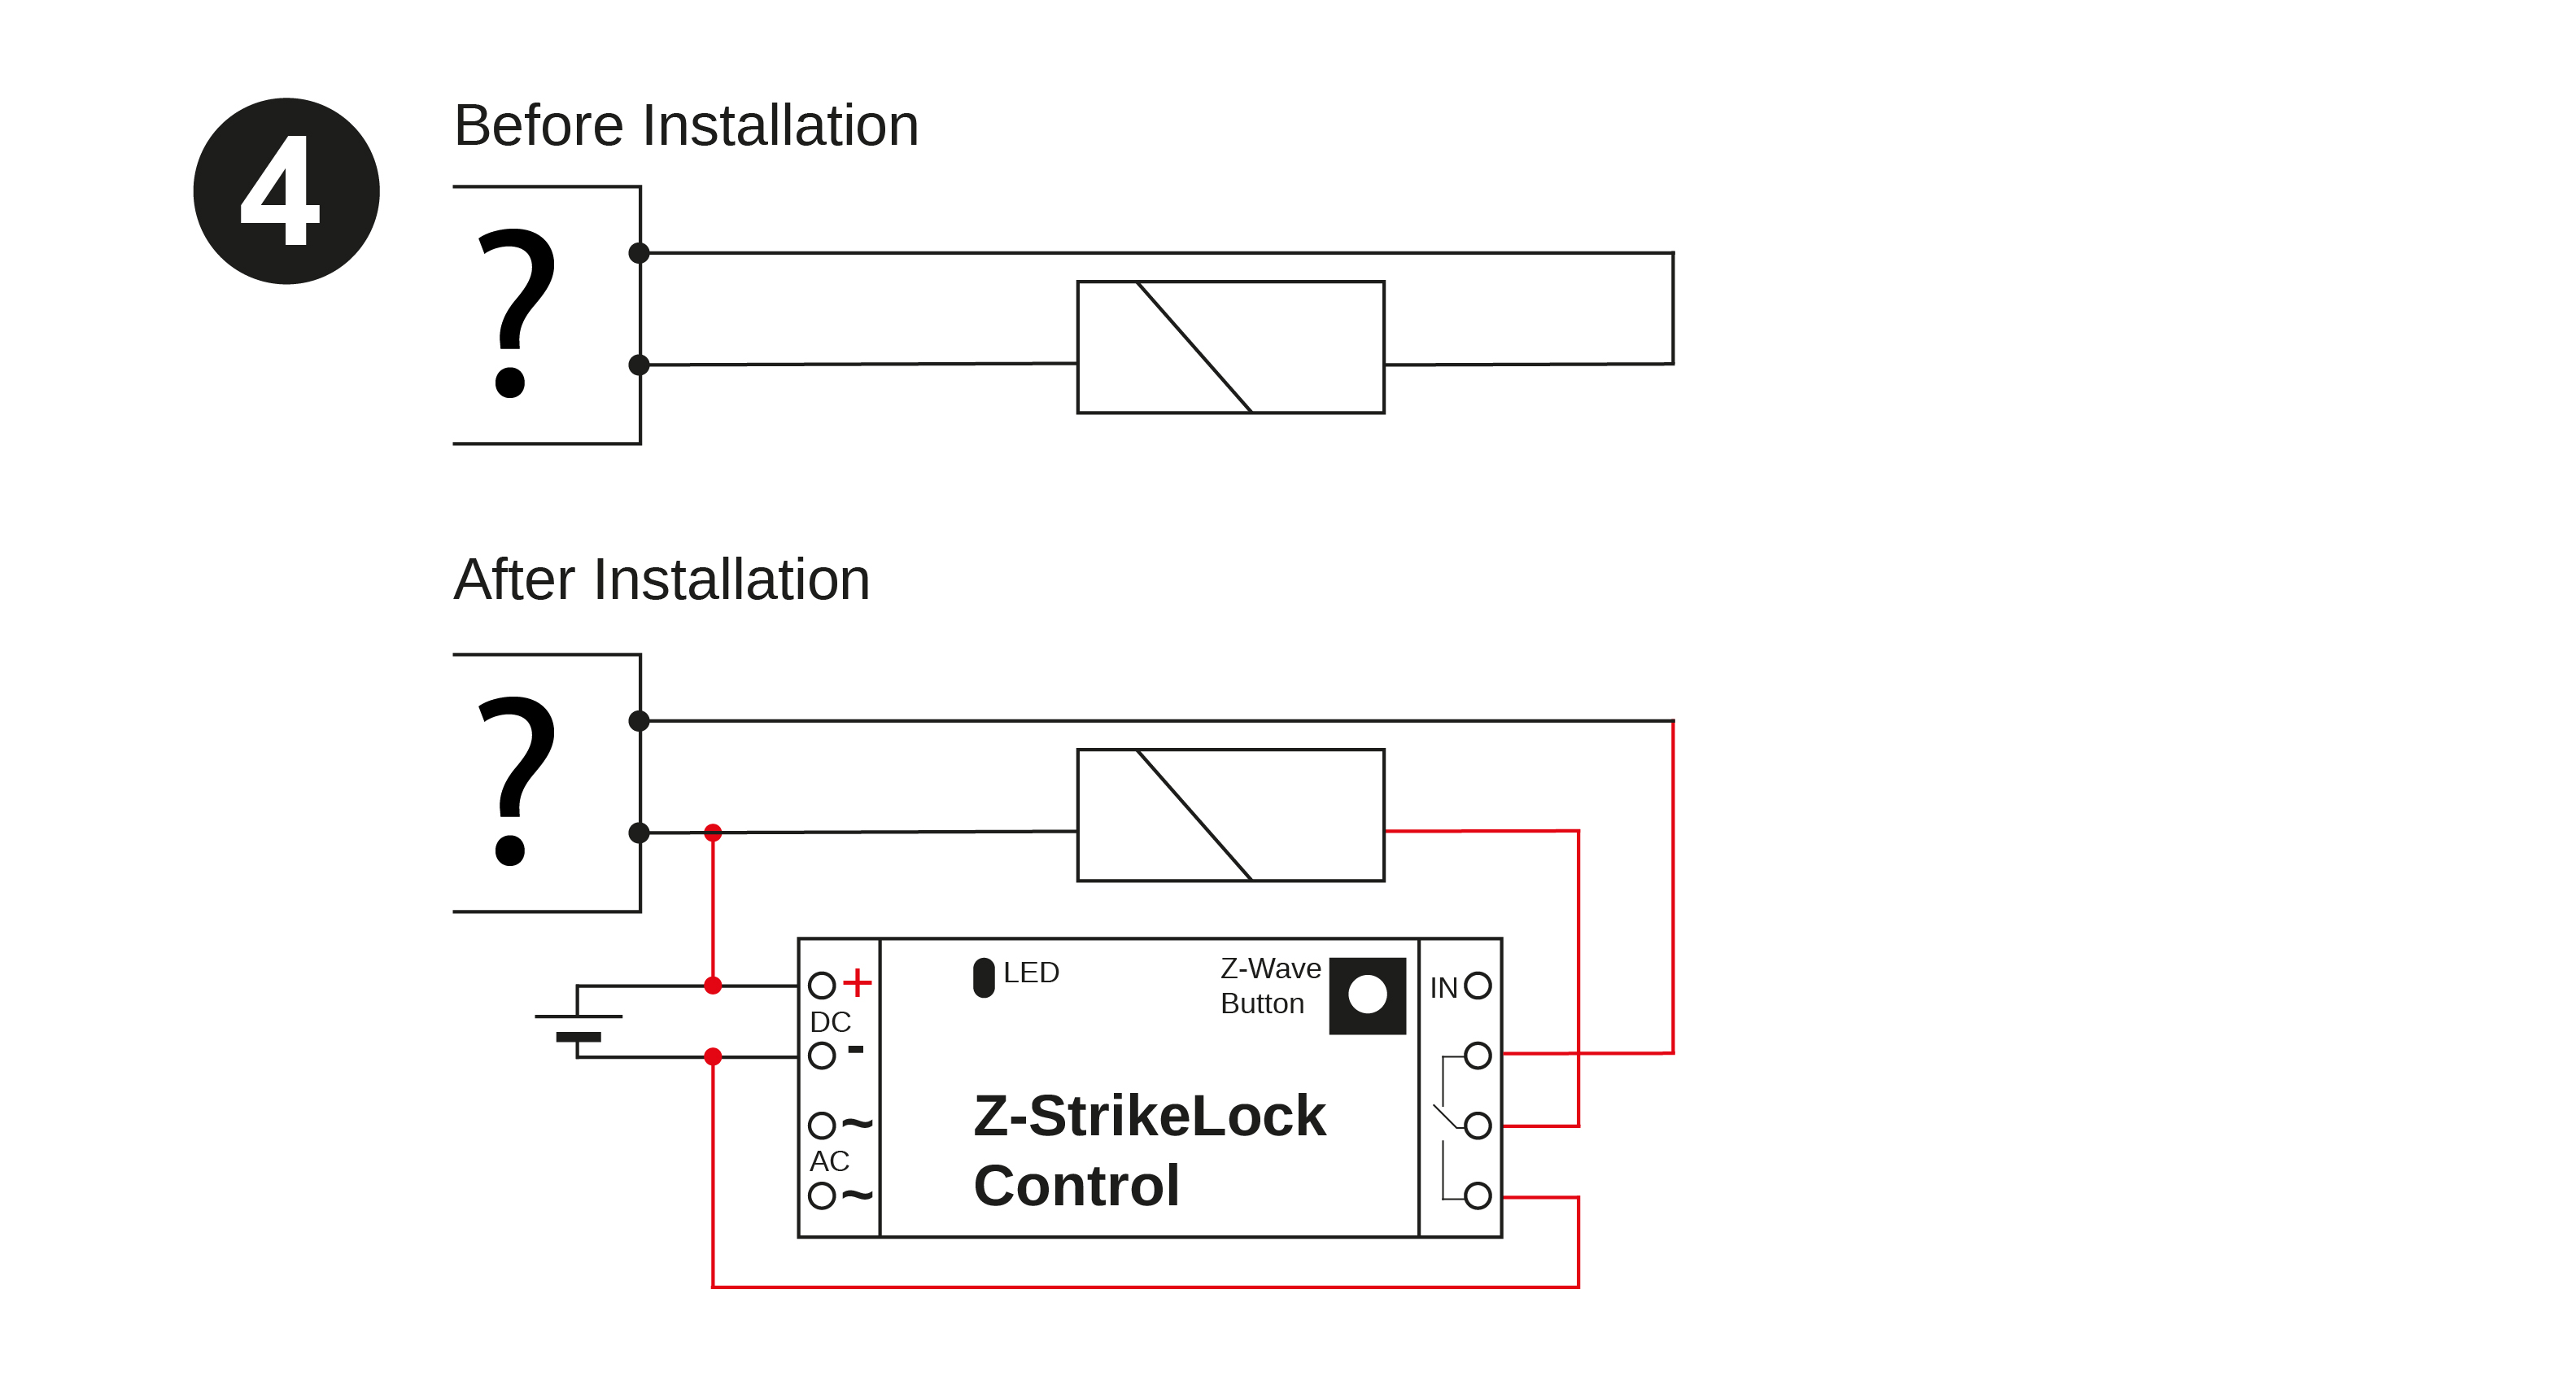 Electric Strike Lock Control Door Opener Wireless Intercom Circuit Diagram The Image Below Shows Required Wiring System Will With Both Battery Operation And Ac Power Supply Solution Only